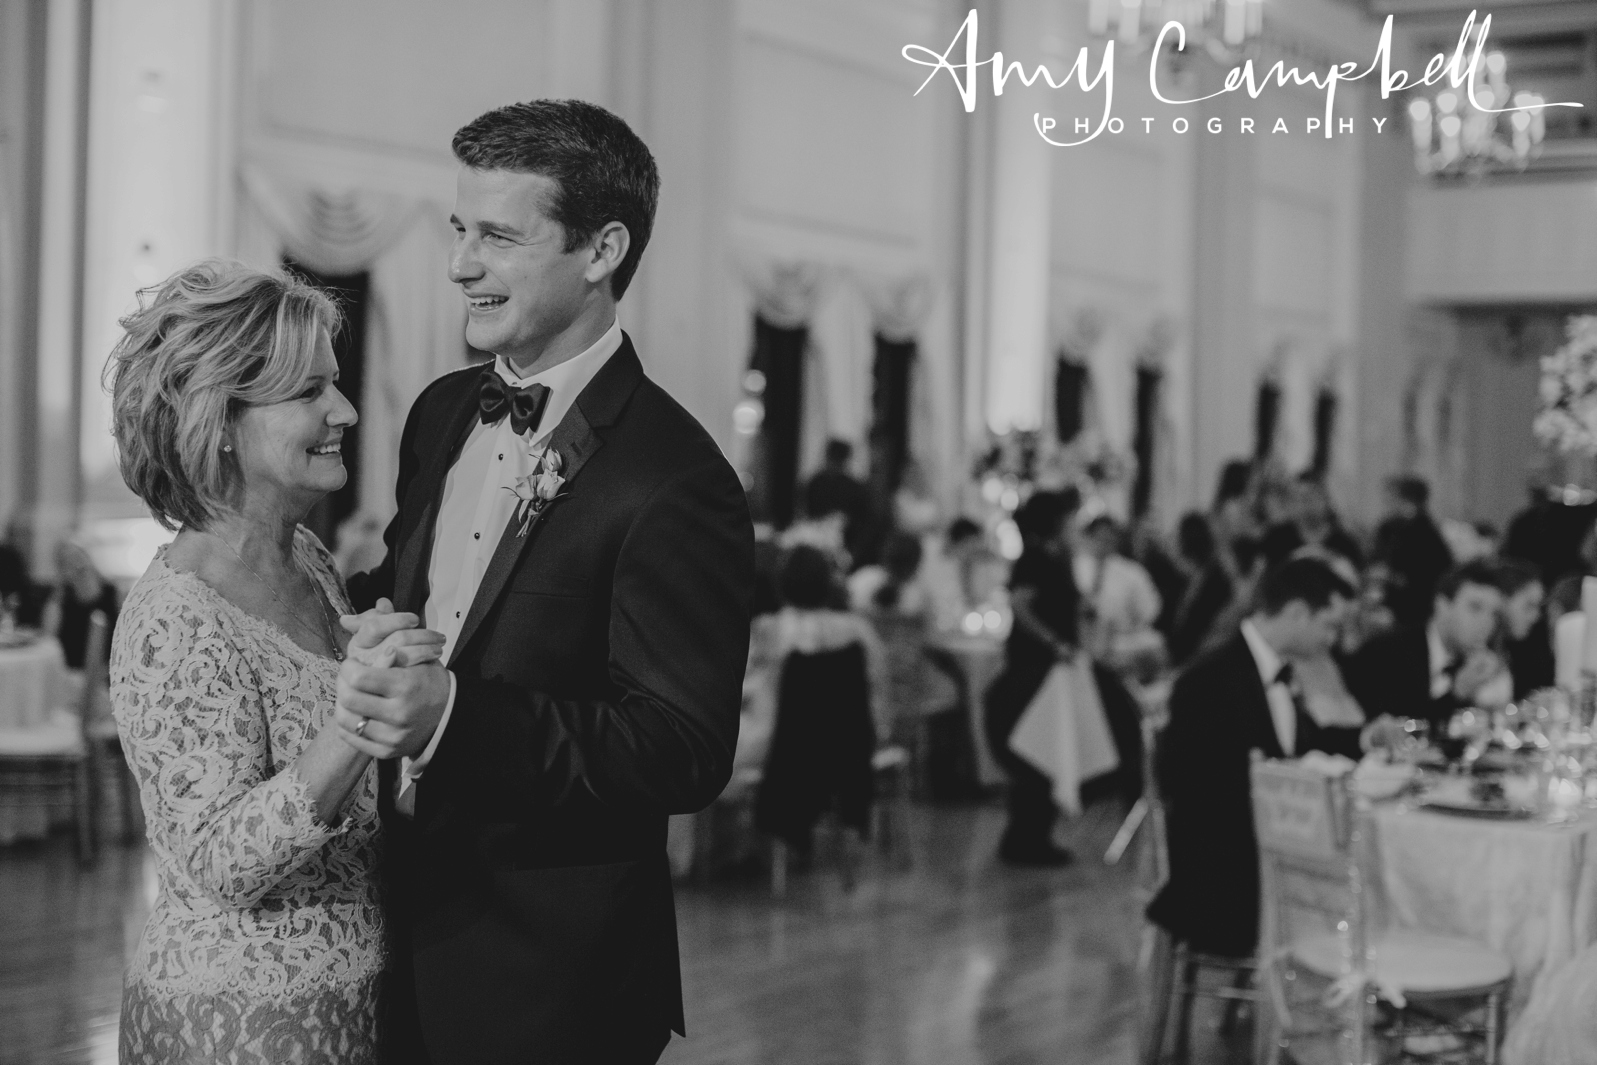 chelseamike_wedss_pics_amycampbellphotography_147.jpg